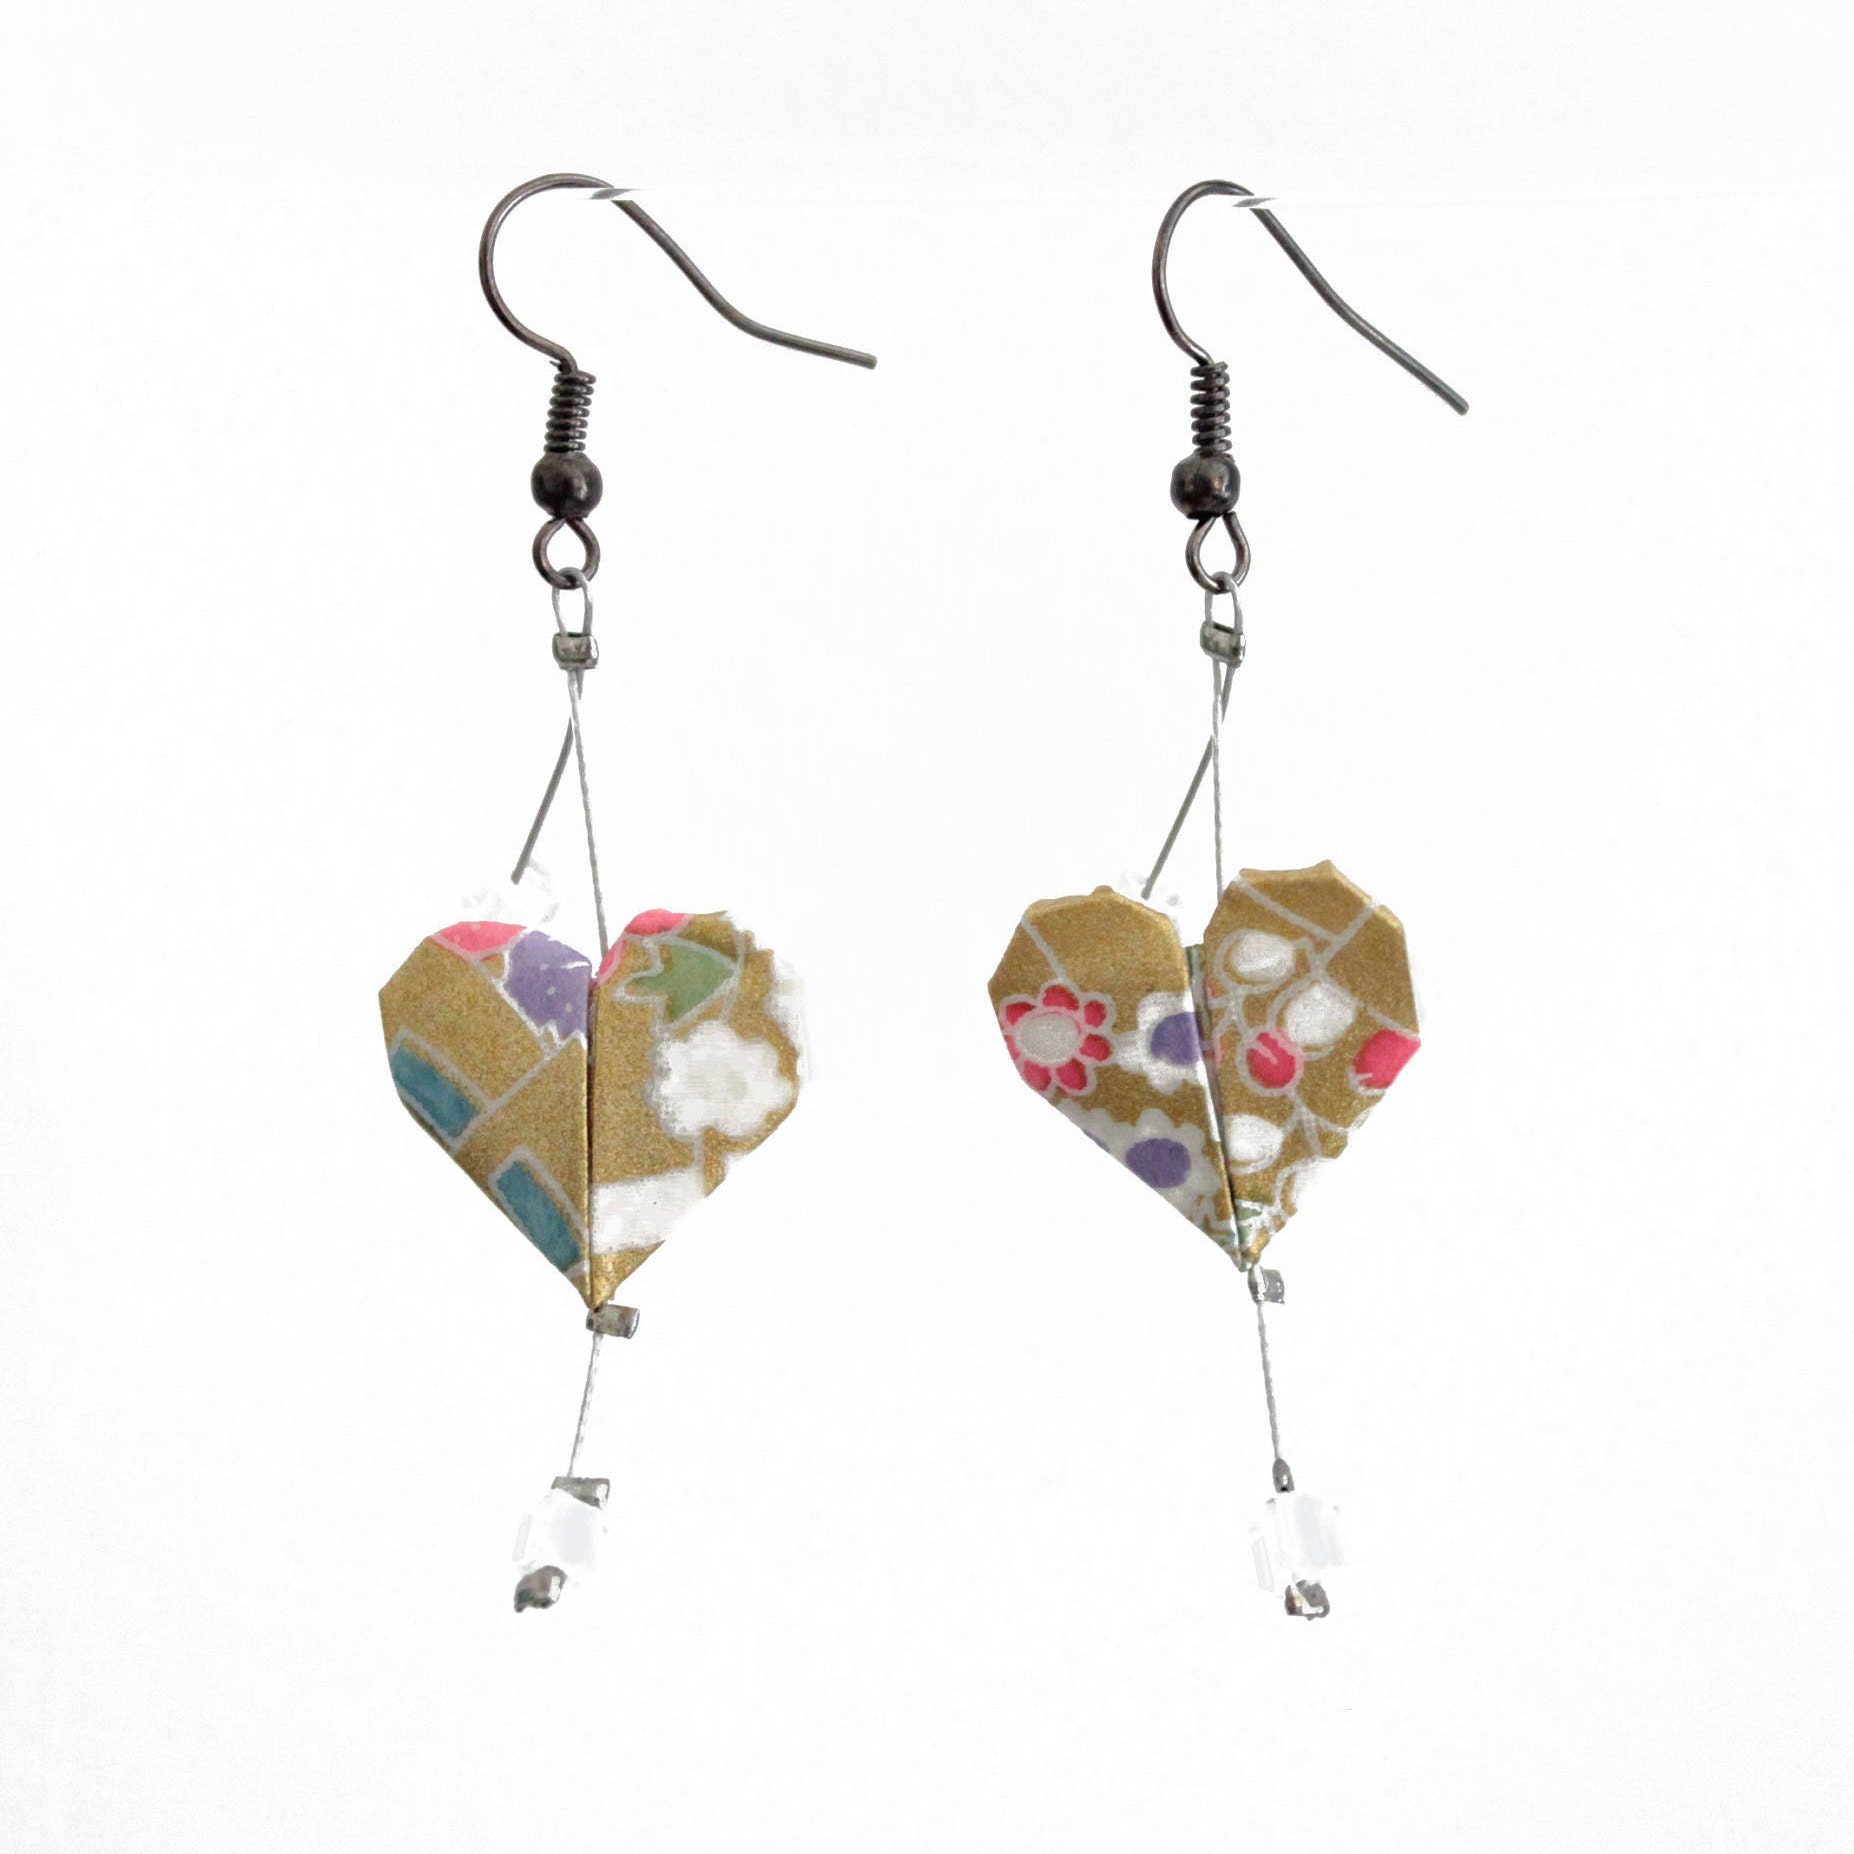 Origami heart gold earrings and multicolored patterns Japanese